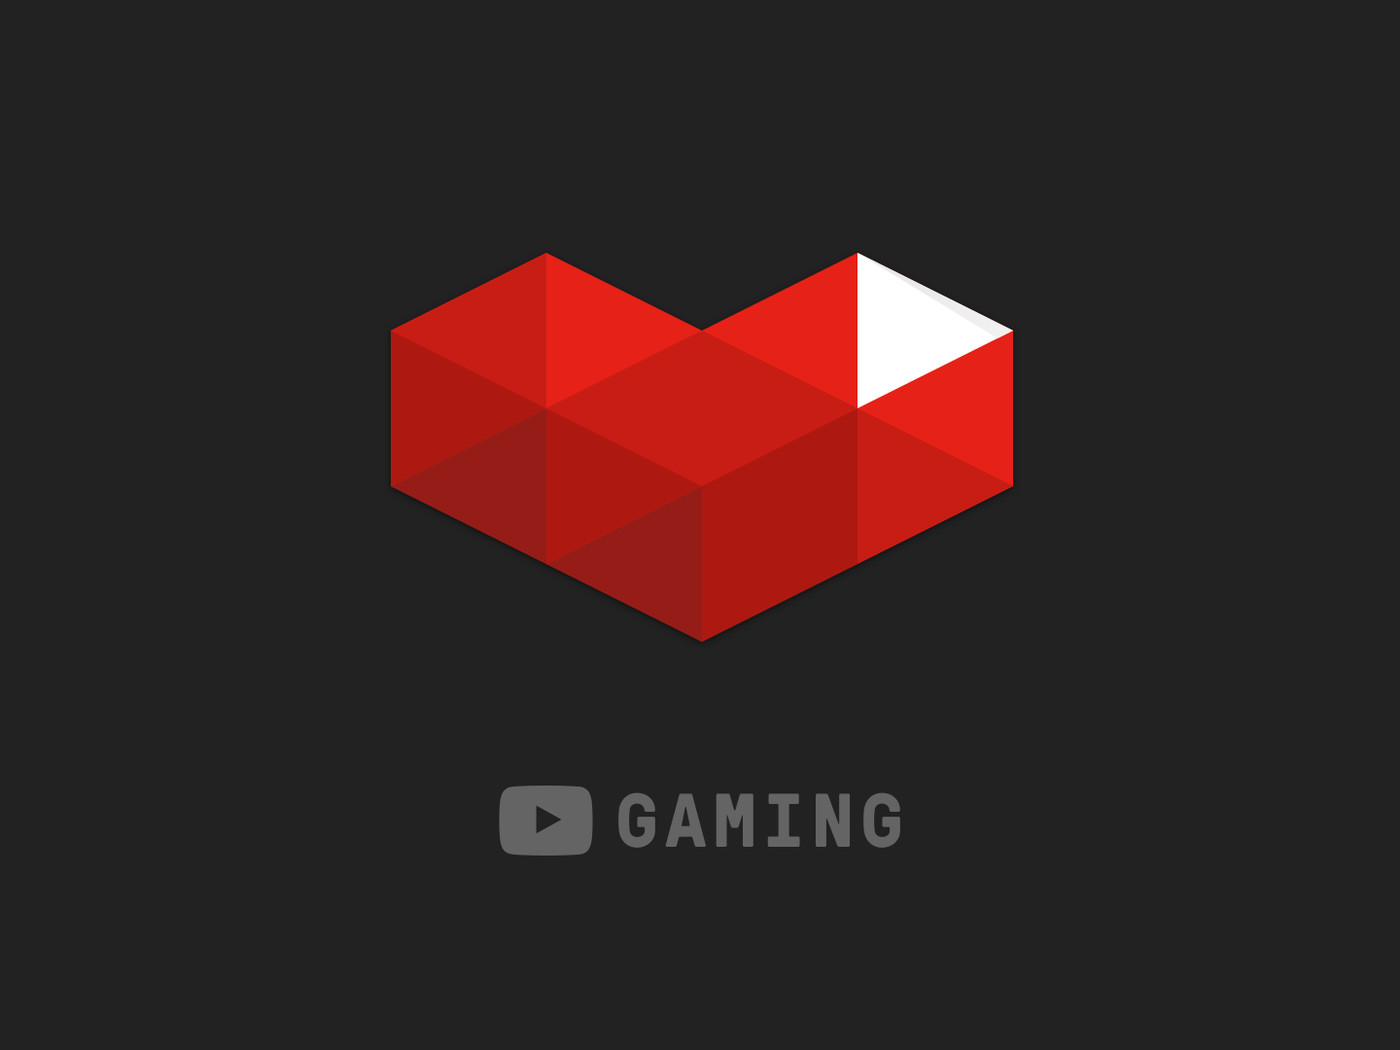 Gaming on YouTube